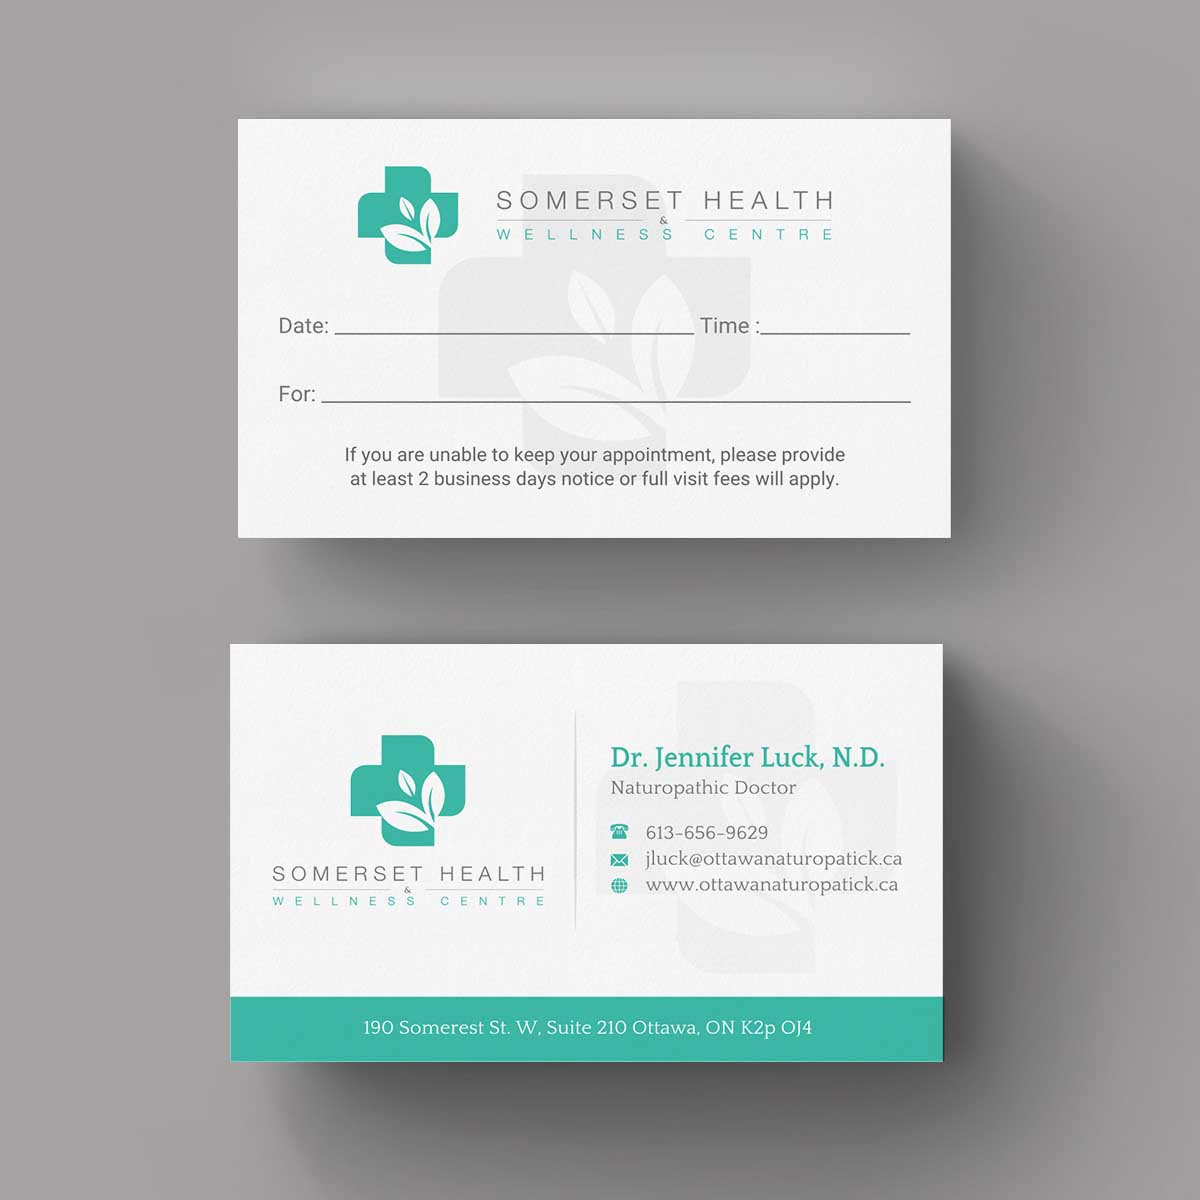 Serious upmarket health and wellness business card design for business card design by indianashok for somerset health wellness centre design 11024219 reheart Images